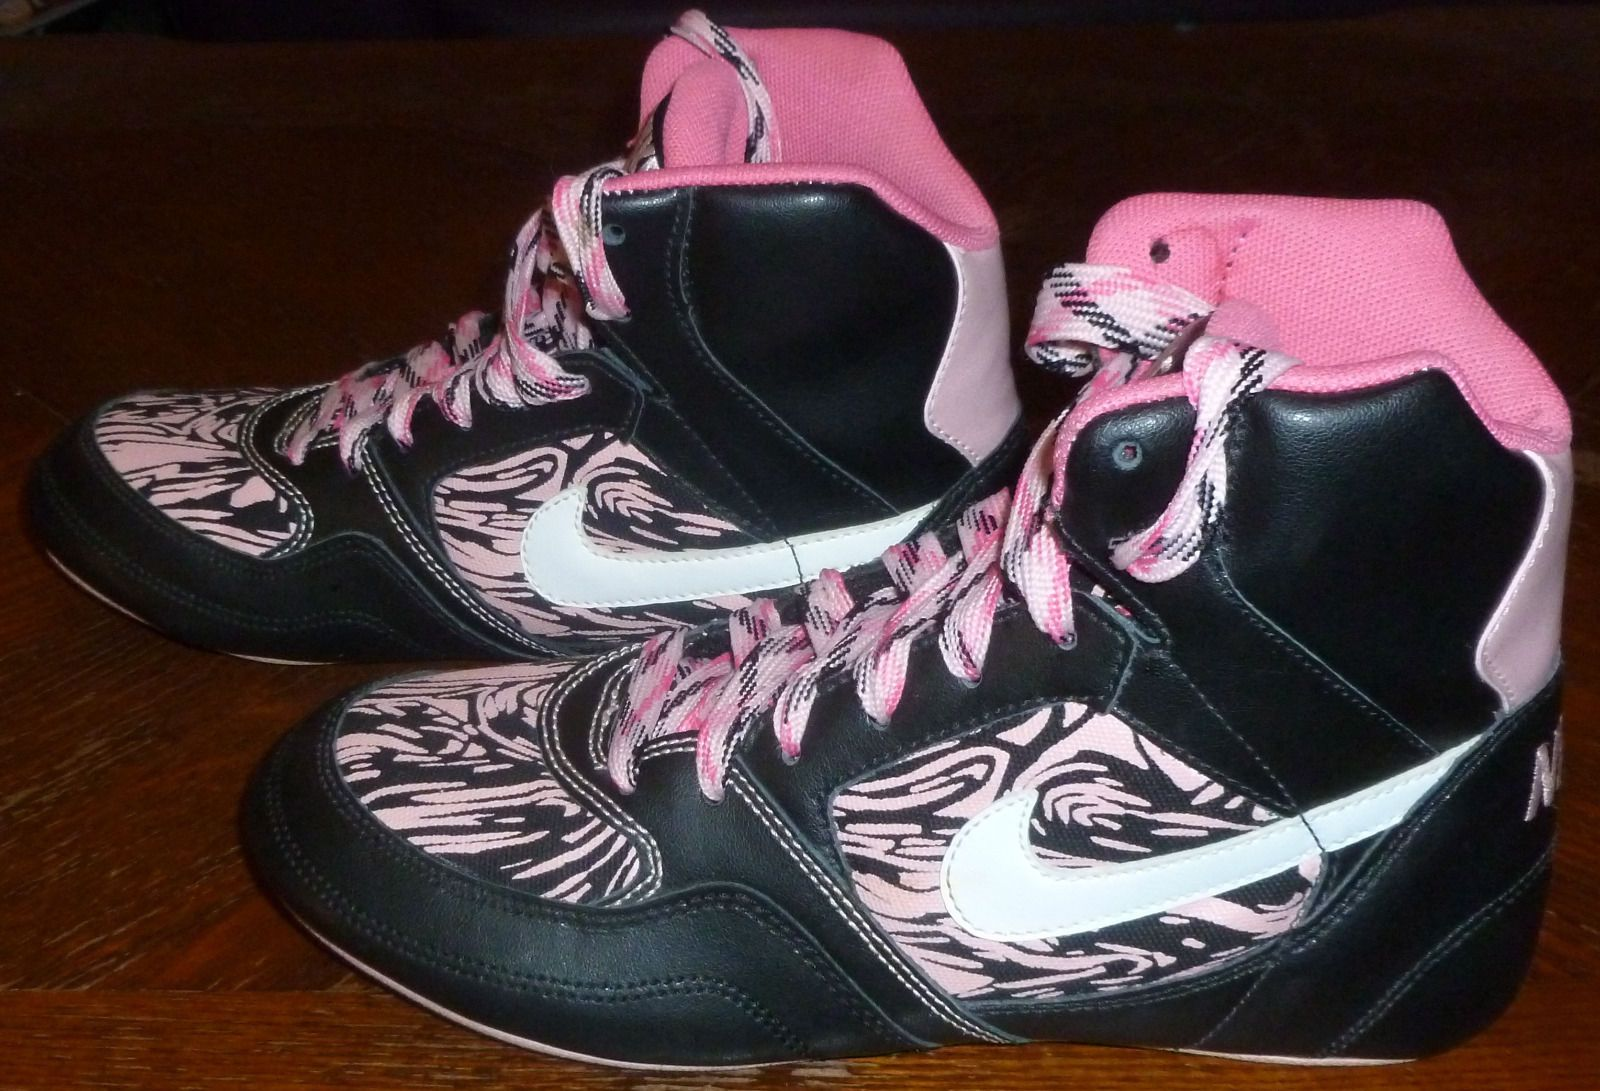 Nike Athletic Shoes Size 7 for Women